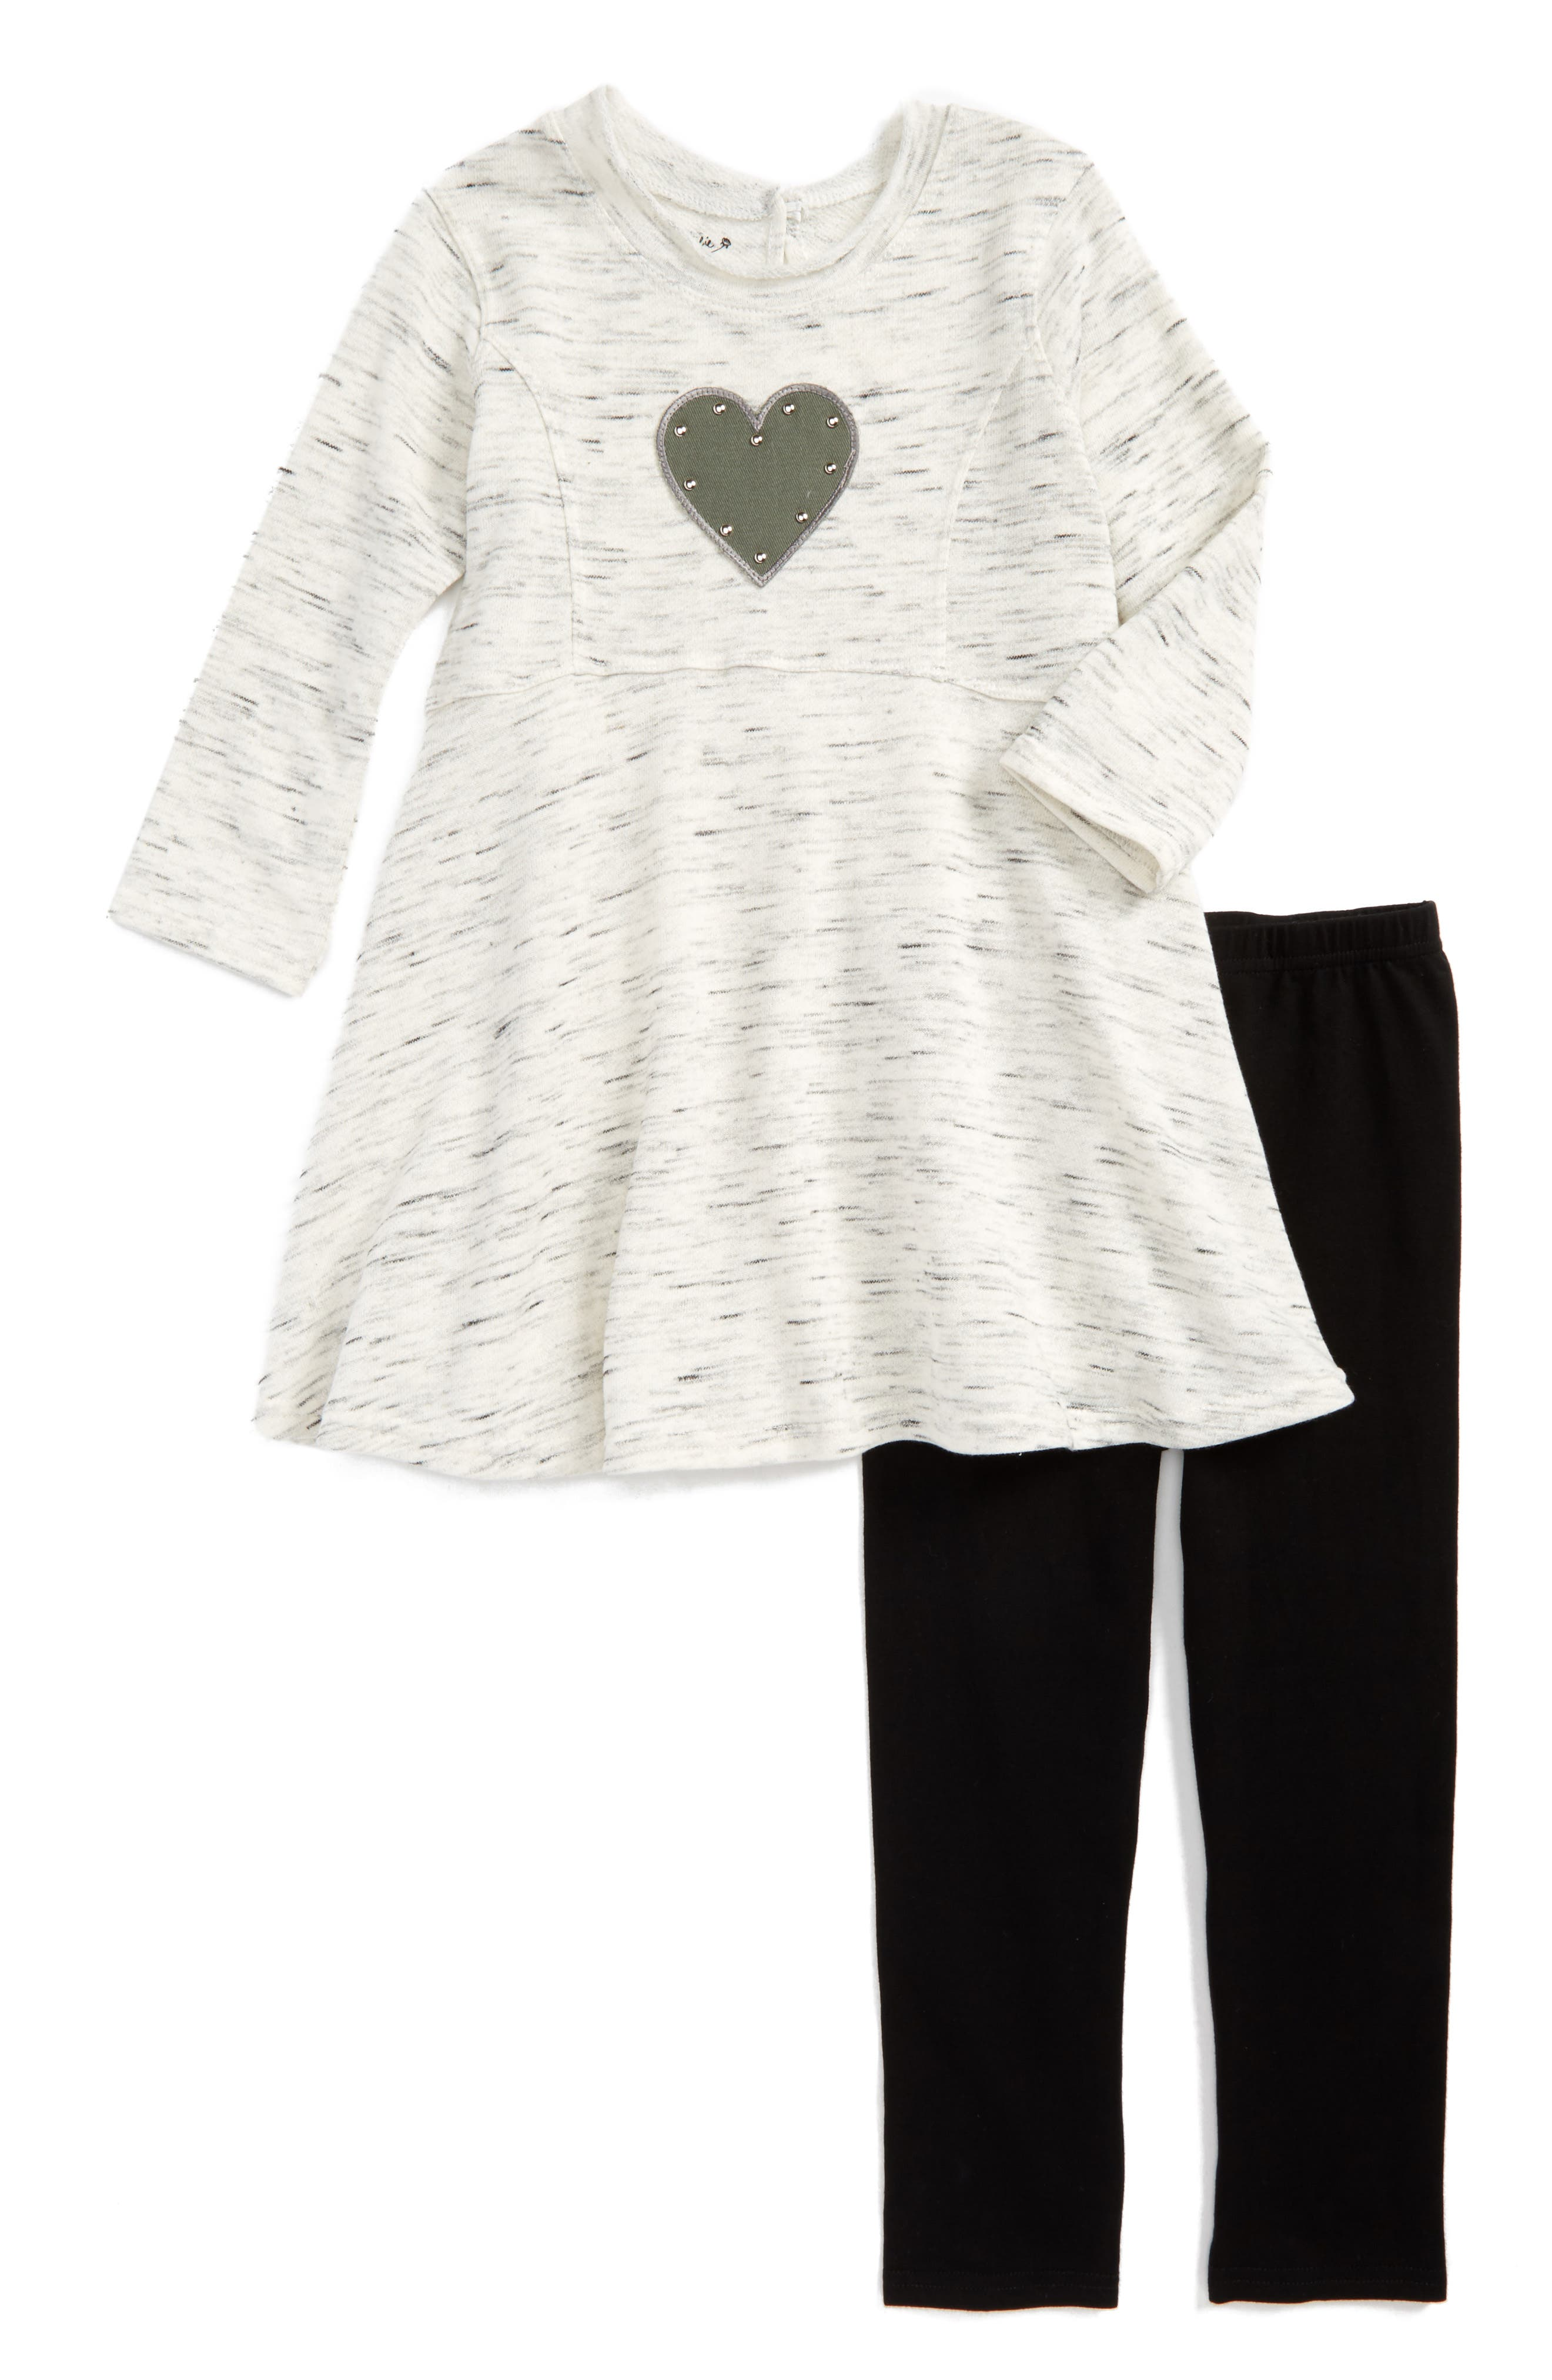 Main Image - Pippa & Julie Studded Heart Dress & Leggings (Baby Girls & Toddler Girls)